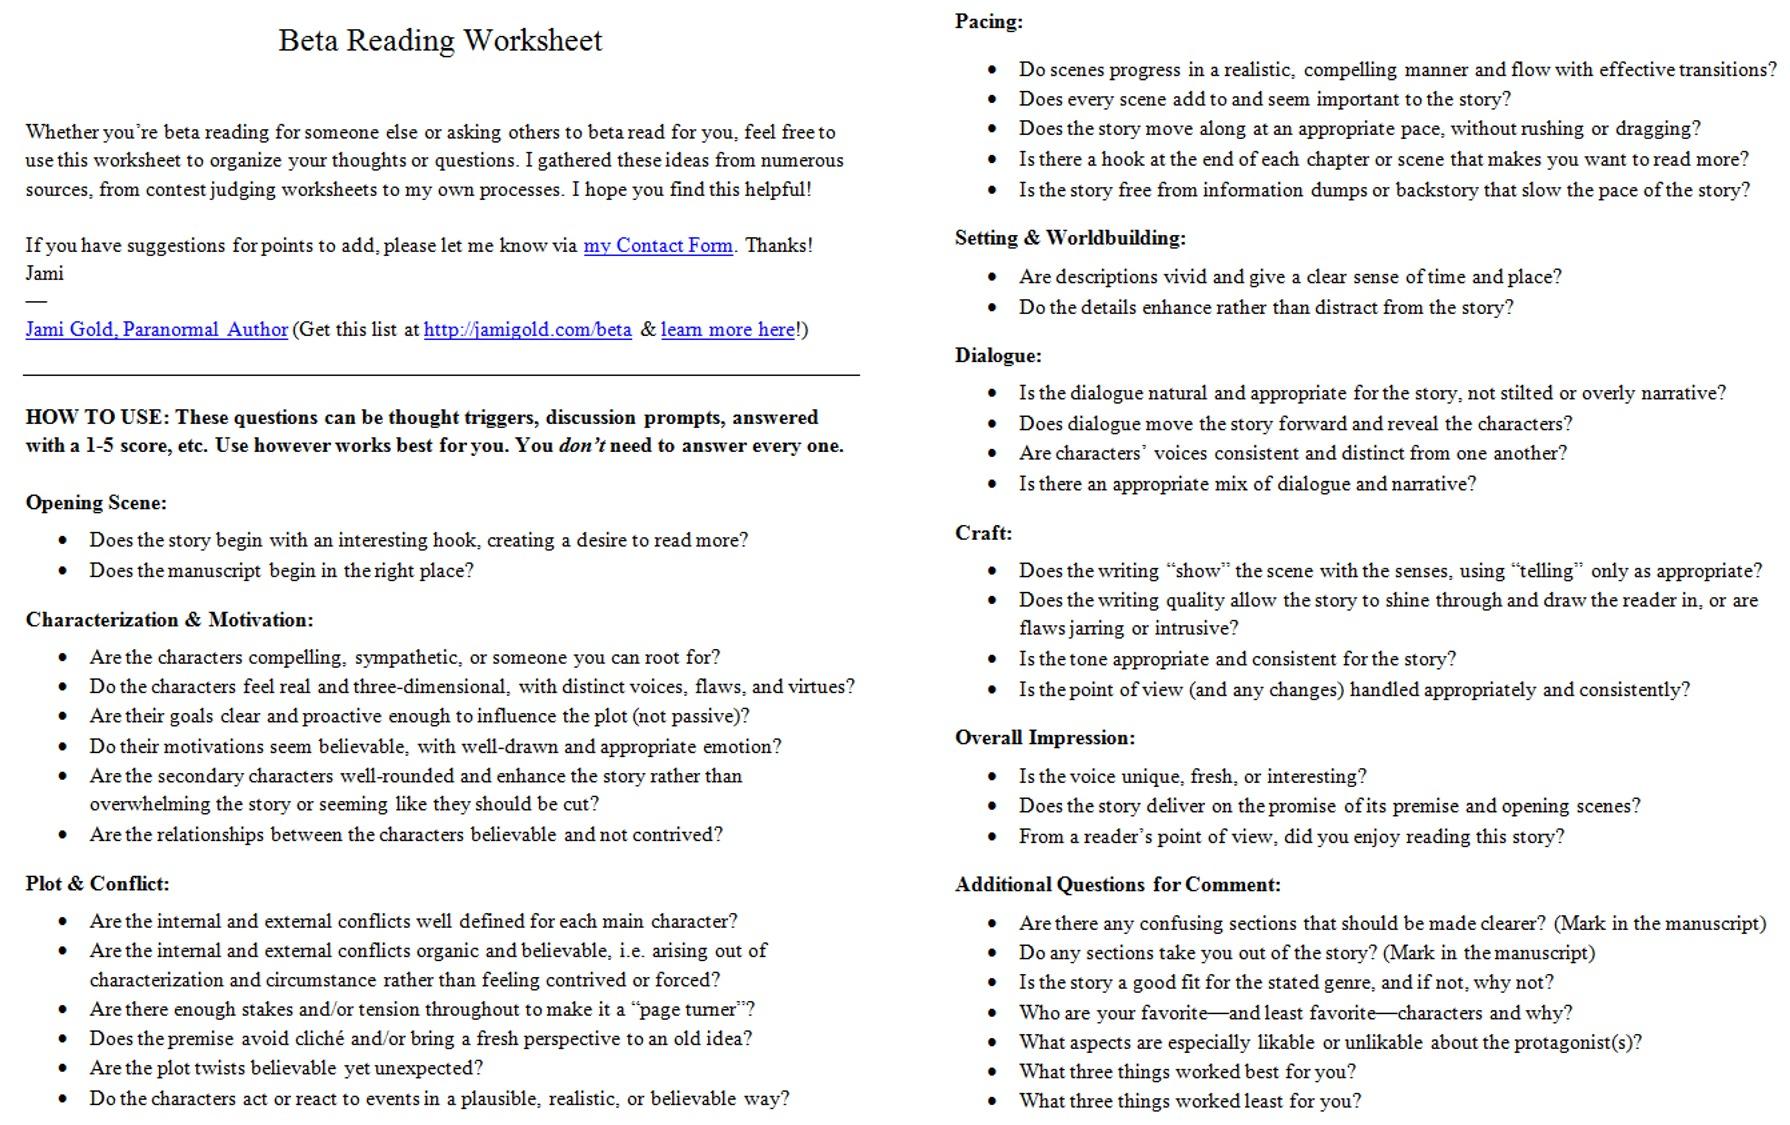 Weirdmailus  Marvellous Worksheets For Writers  Jami Gold Paranormal Author With Outstanding Screen Shot Of The Twopage Beta Reading Worksheet With Enchanting Physical And Chemical Properties Of Matter Worksheet Also Kindergarten Math Addition Worksheets In Addition Poetry Worksheets Th Grade And Fractions Adding And Subtracting Worksheets As Well As Paragraph Editing Worksheets Additionally Sentence Diagramming Worksheet From Jamigoldcom With Weirdmailus  Outstanding Worksheets For Writers  Jami Gold Paranormal Author With Enchanting Screen Shot Of The Twopage Beta Reading Worksheet And Marvellous Physical And Chemical Properties Of Matter Worksheet Also Kindergarten Math Addition Worksheets In Addition Poetry Worksheets Th Grade From Jamigoldcom